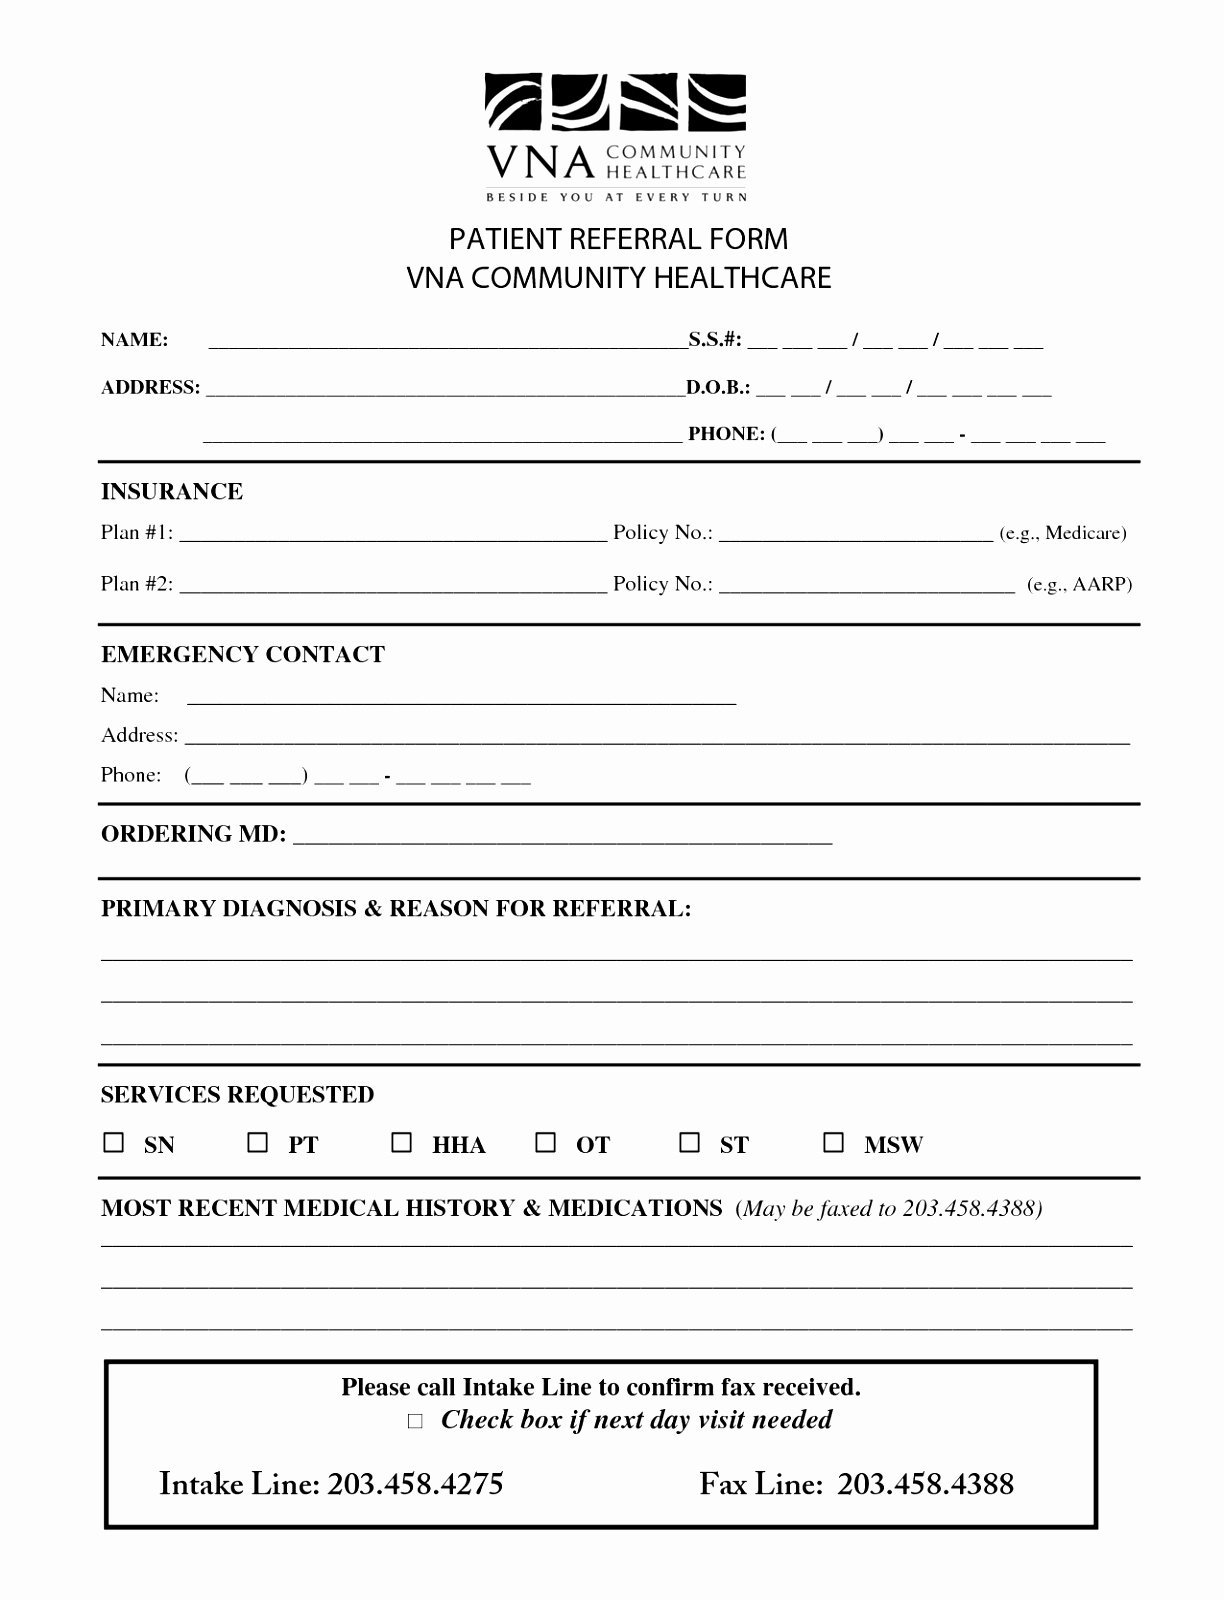 patient referral form template